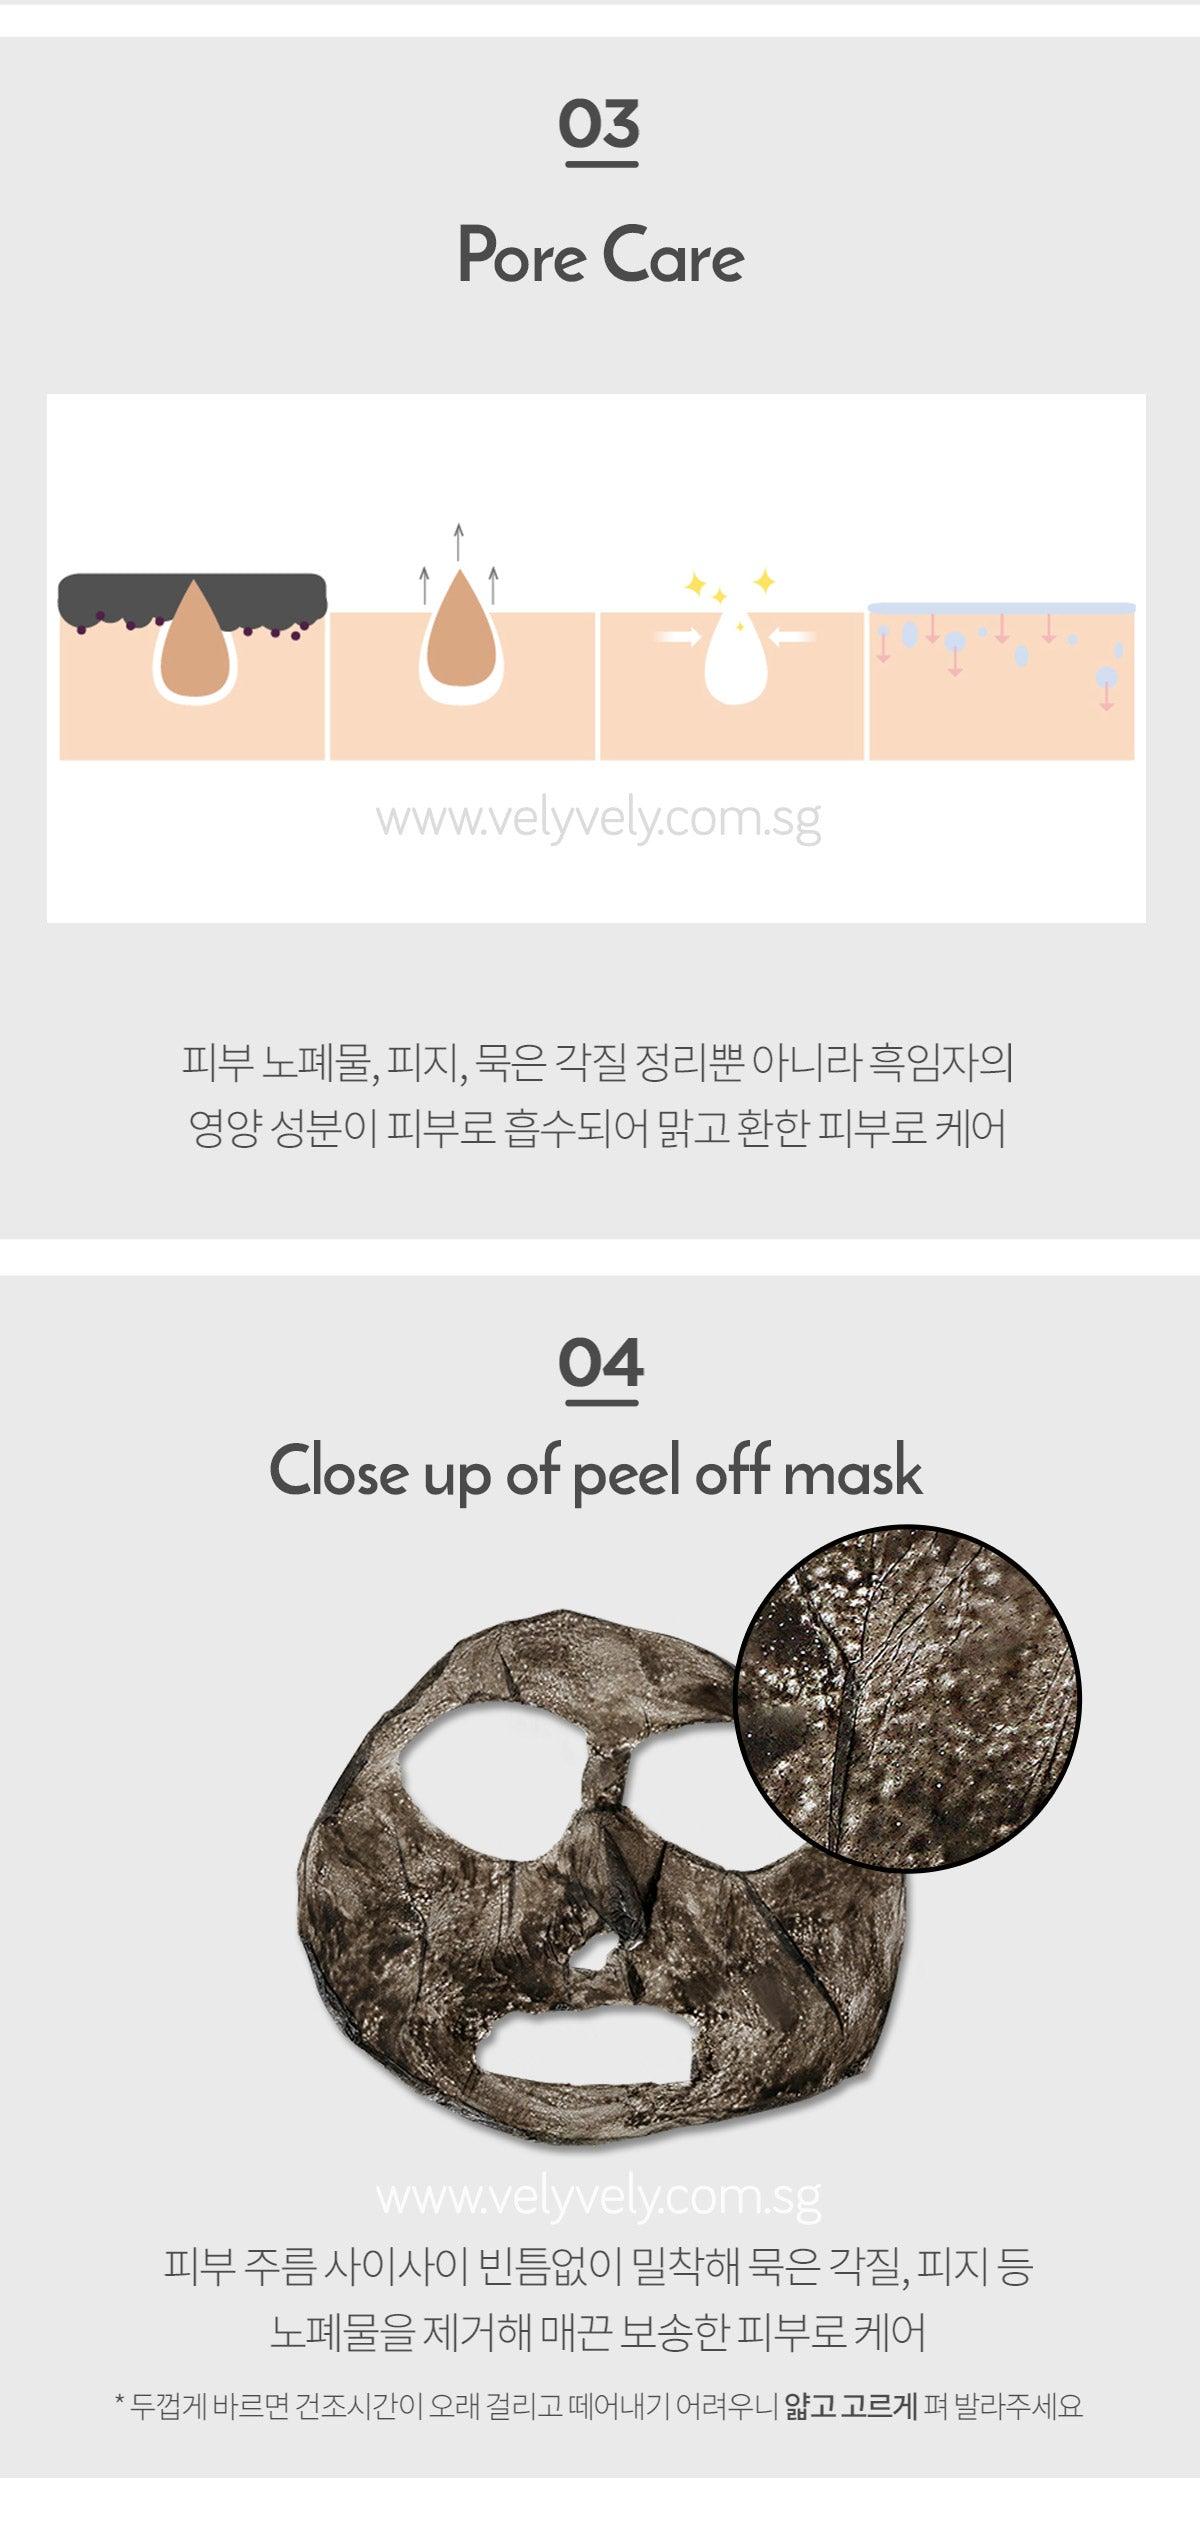 Pore Care & Close up of peeled off mask